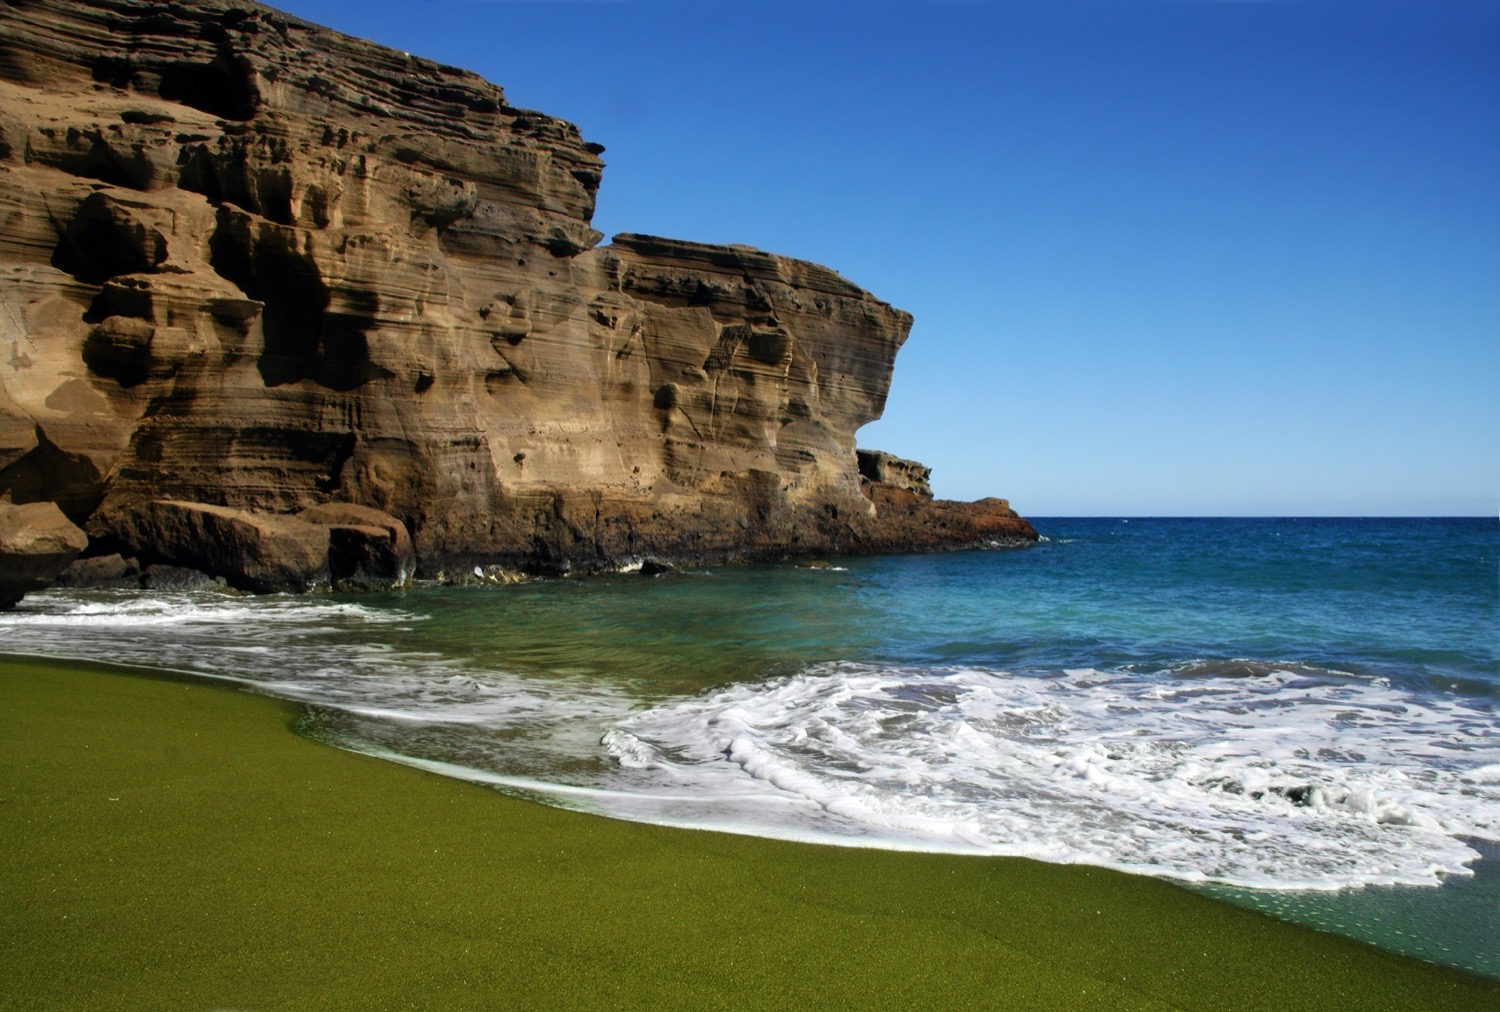 a beach with green sand that looks the shade of moss. in the horizon are weathered cliffs